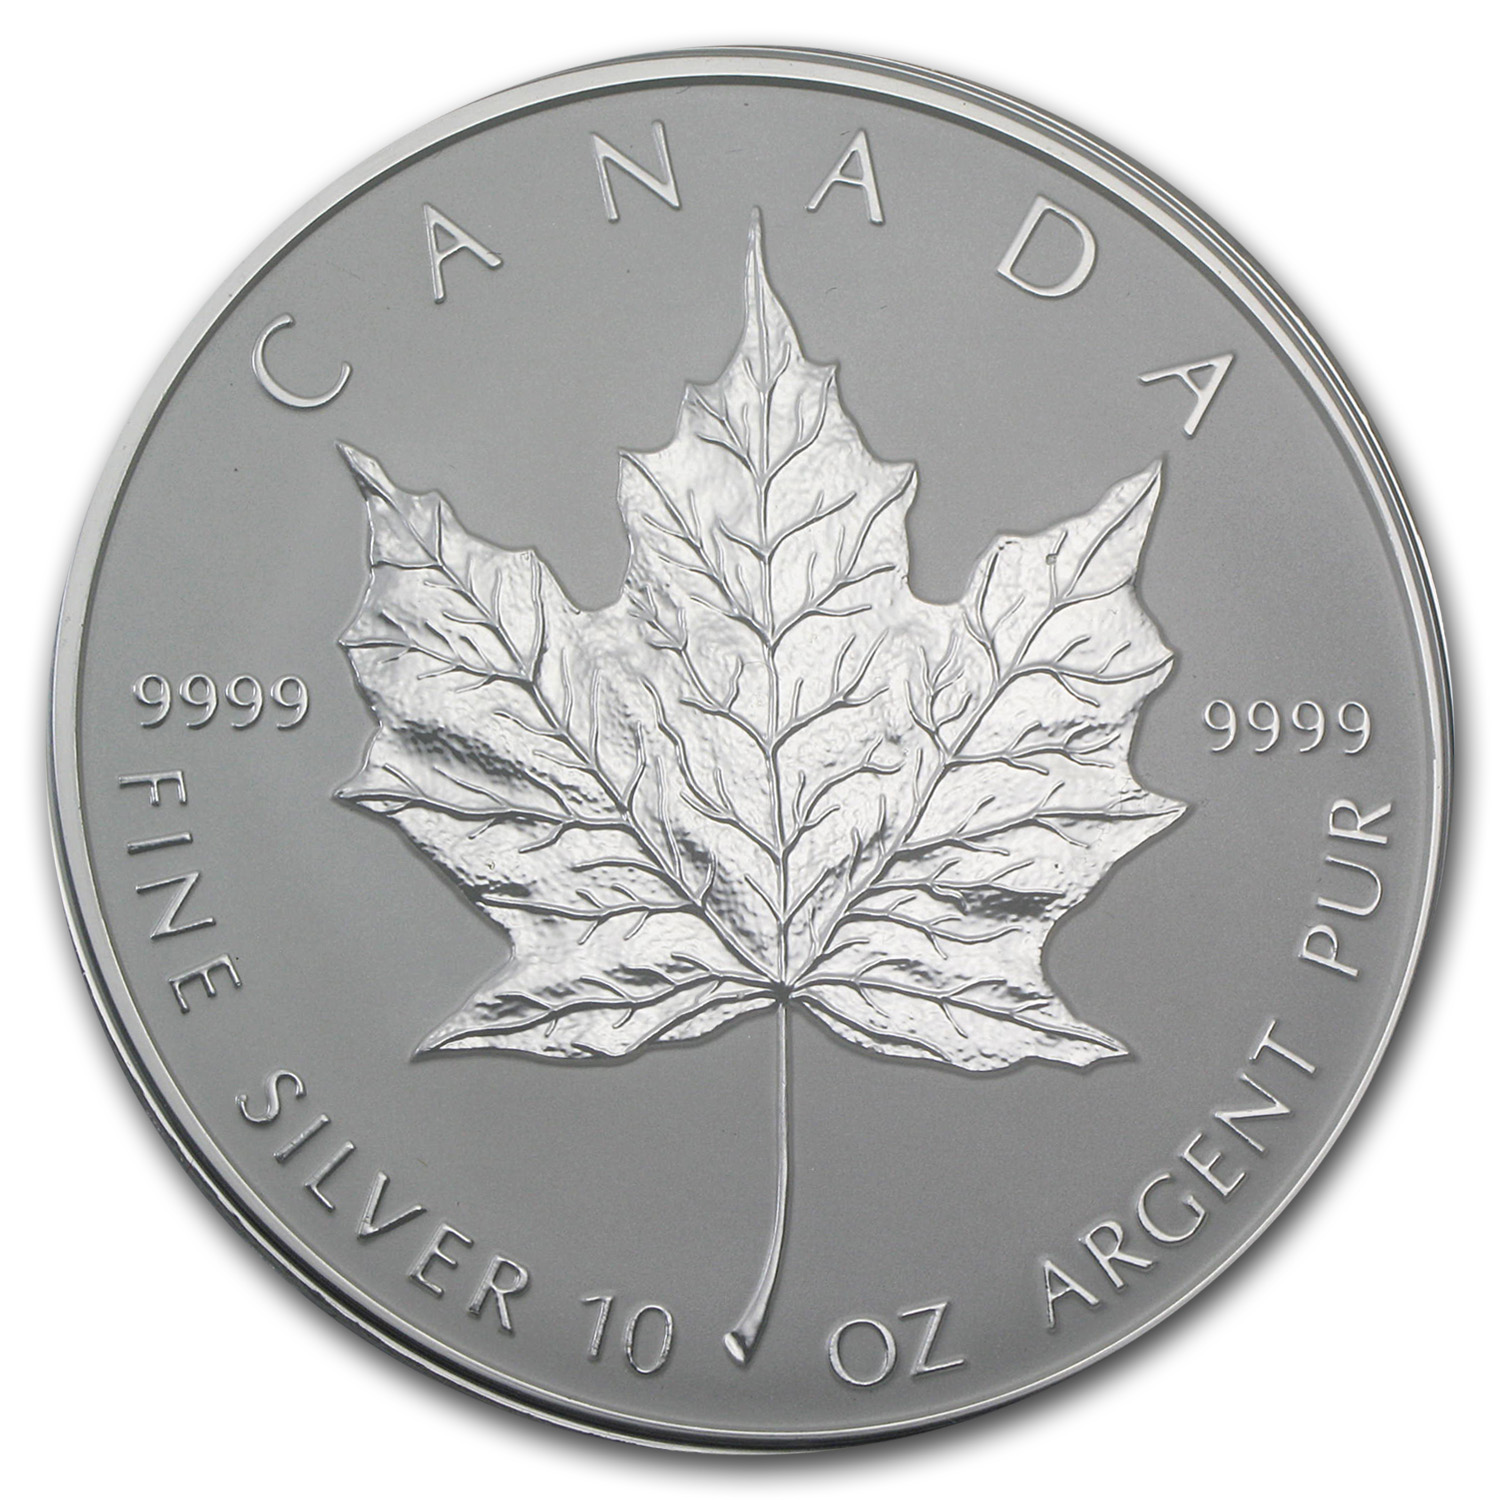 1998 10 oz Silver Canadian $50 Maple Leaf (10th Anniversary)